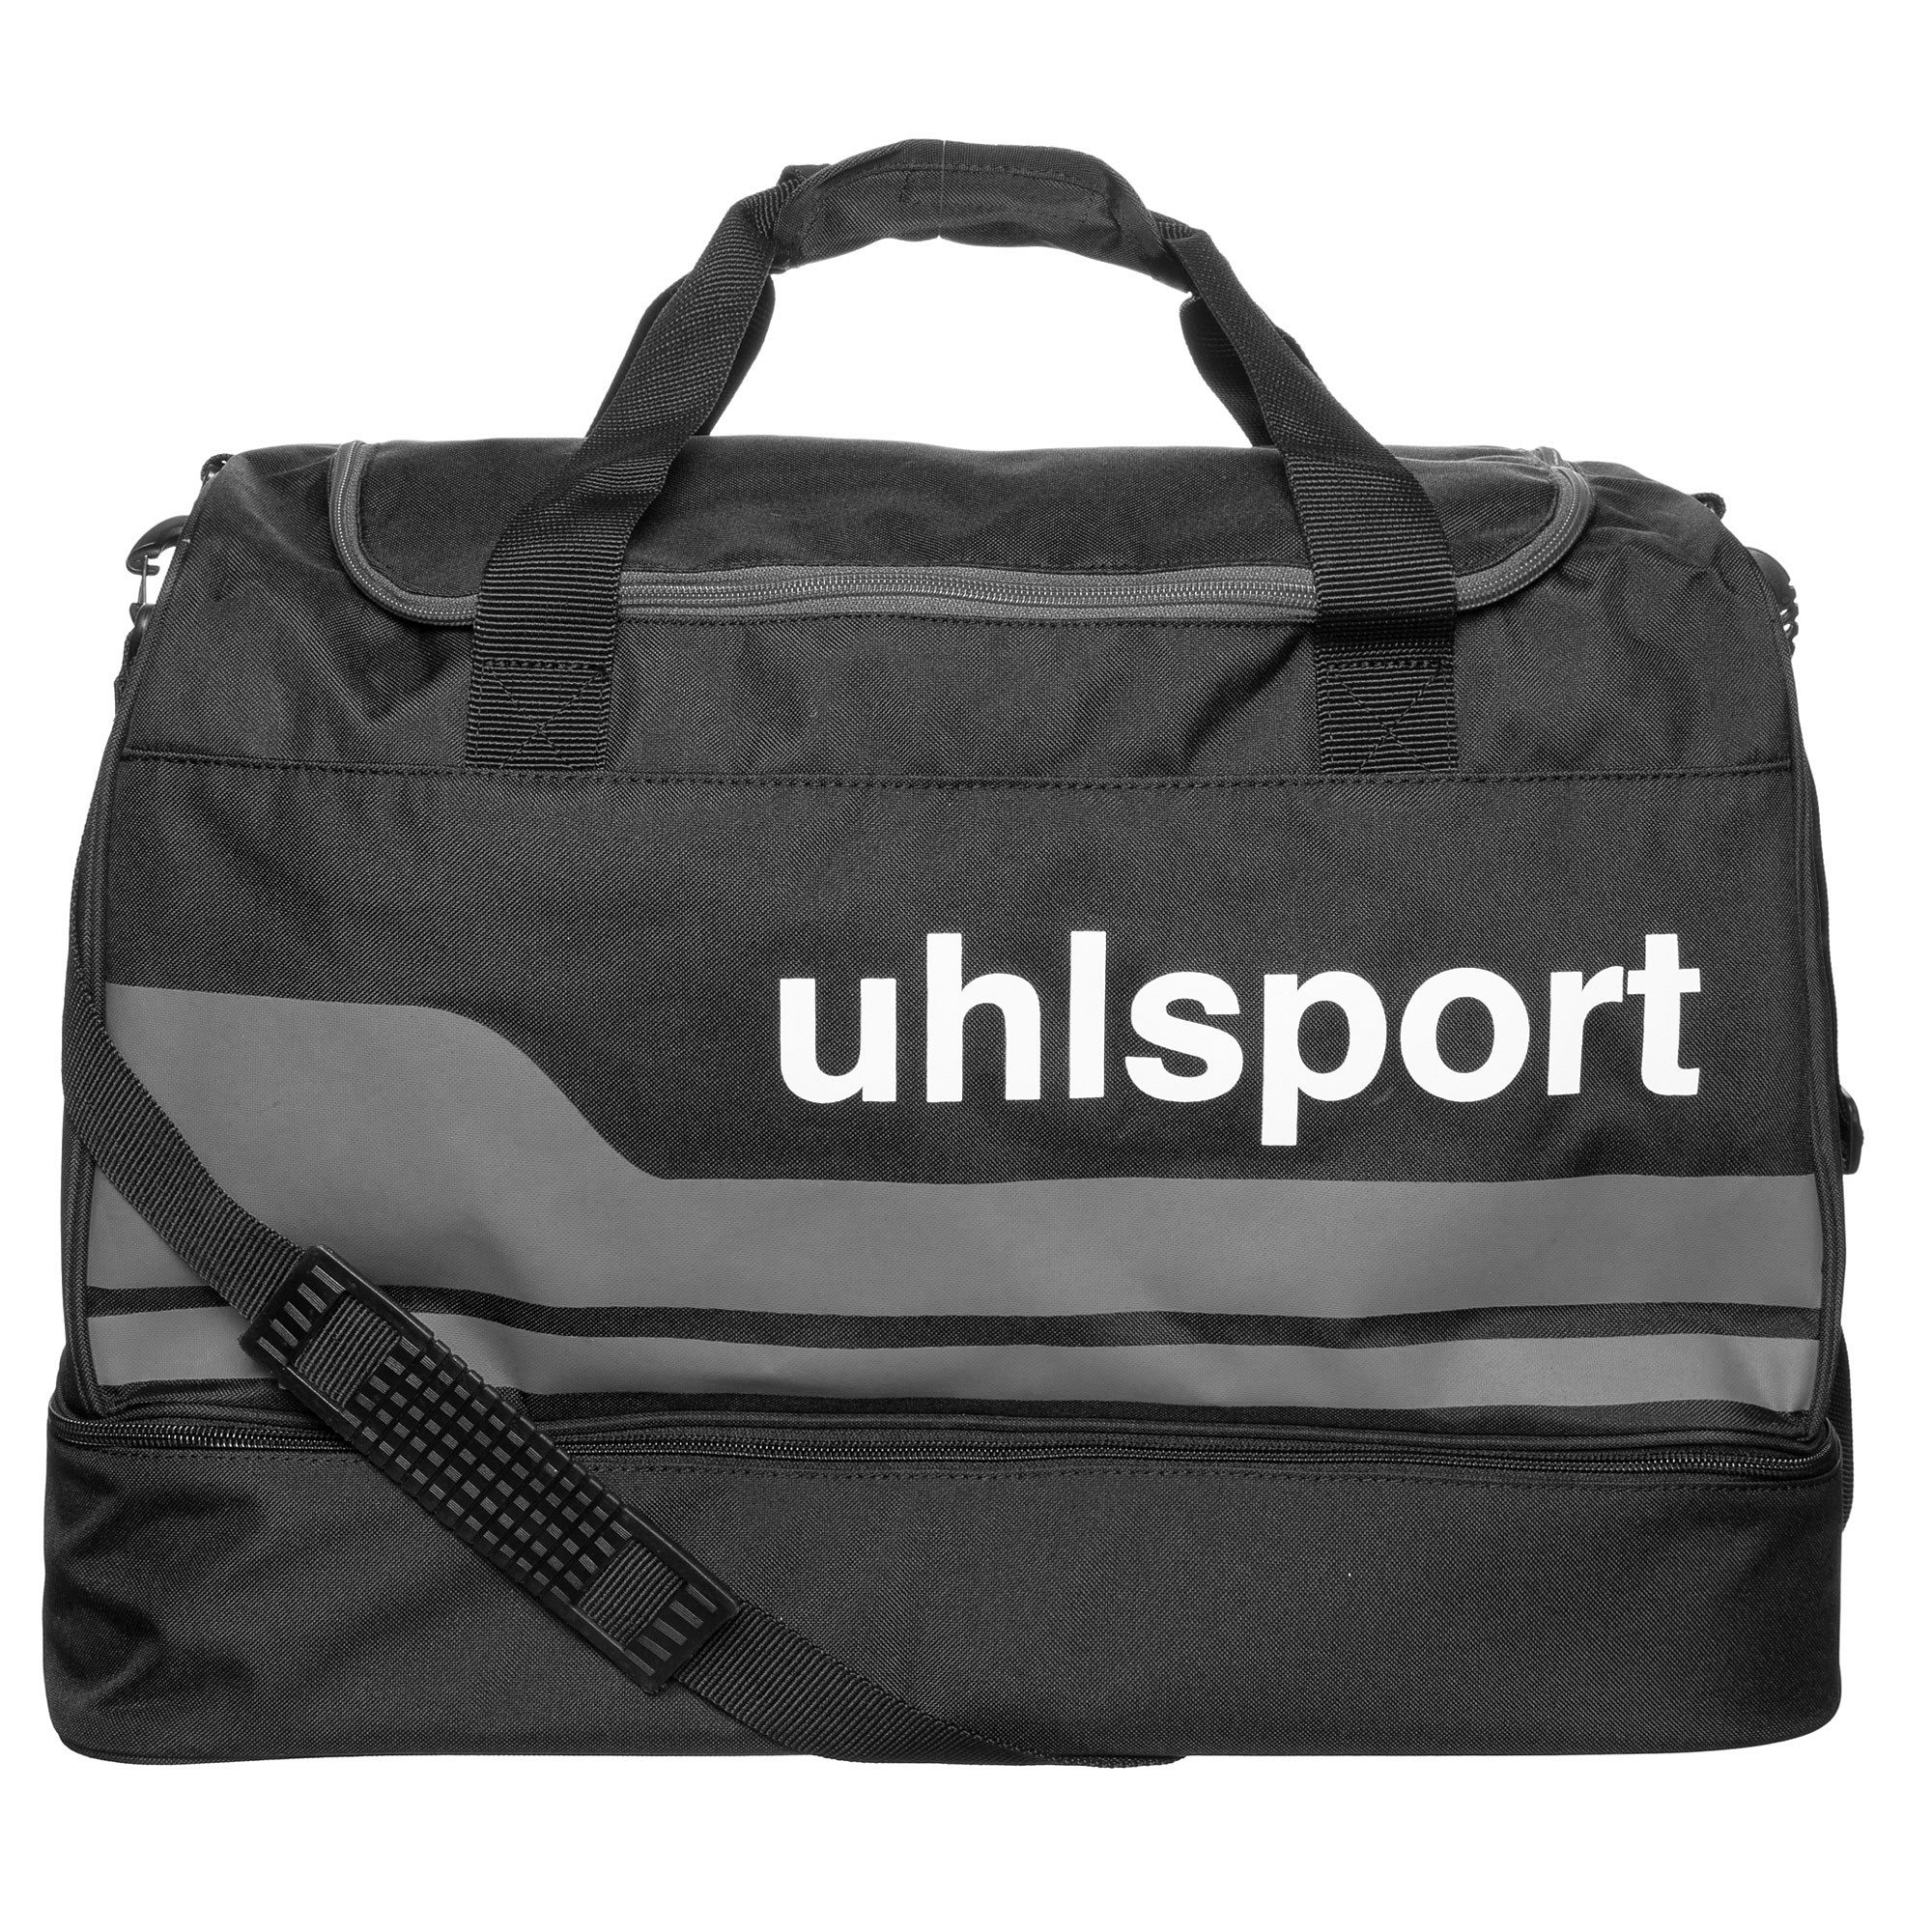 UHLSPORT Basic Line 2.0 50 L Spielertasche